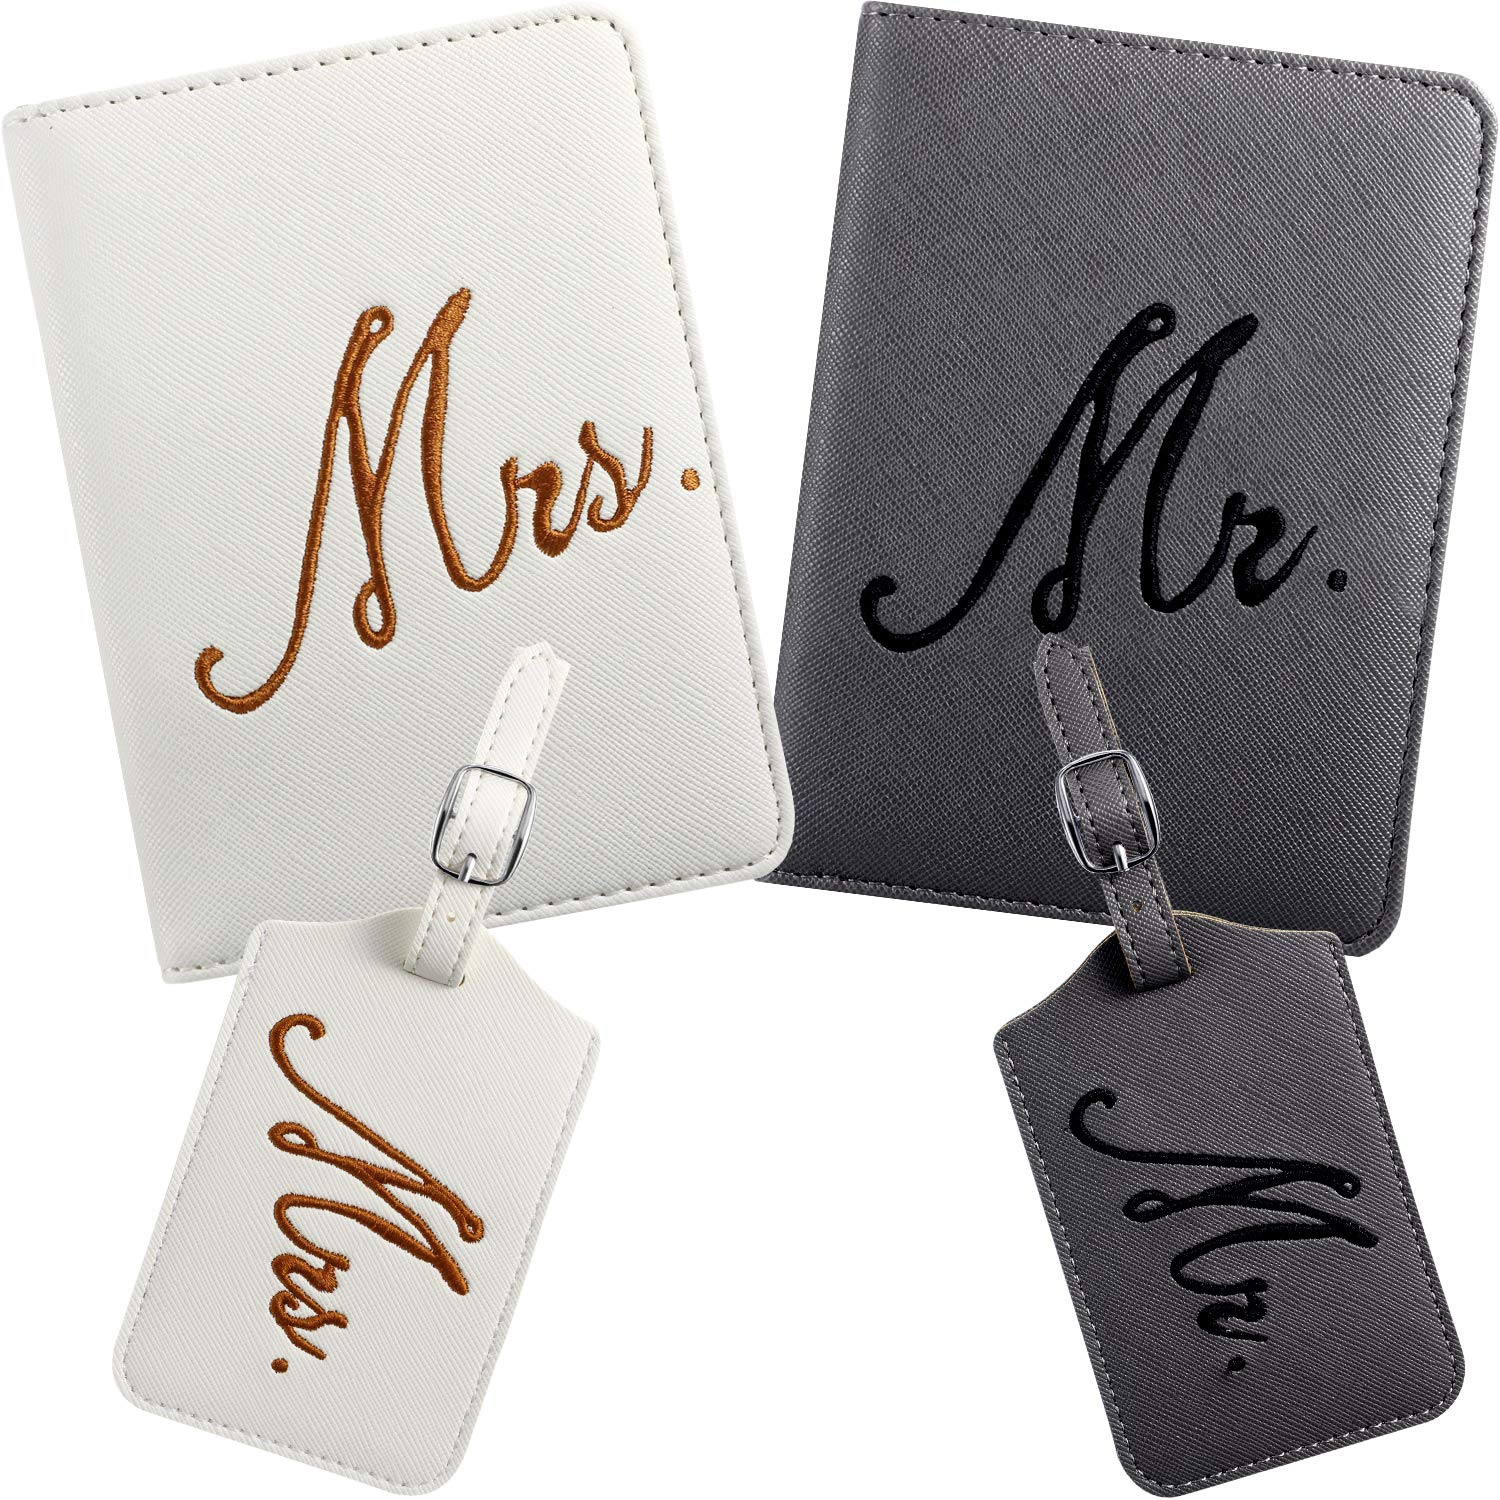 2 Pieces Mr and Mrs Bridal Luggage Tags and Passport Covers (White, Gray) by Frienda